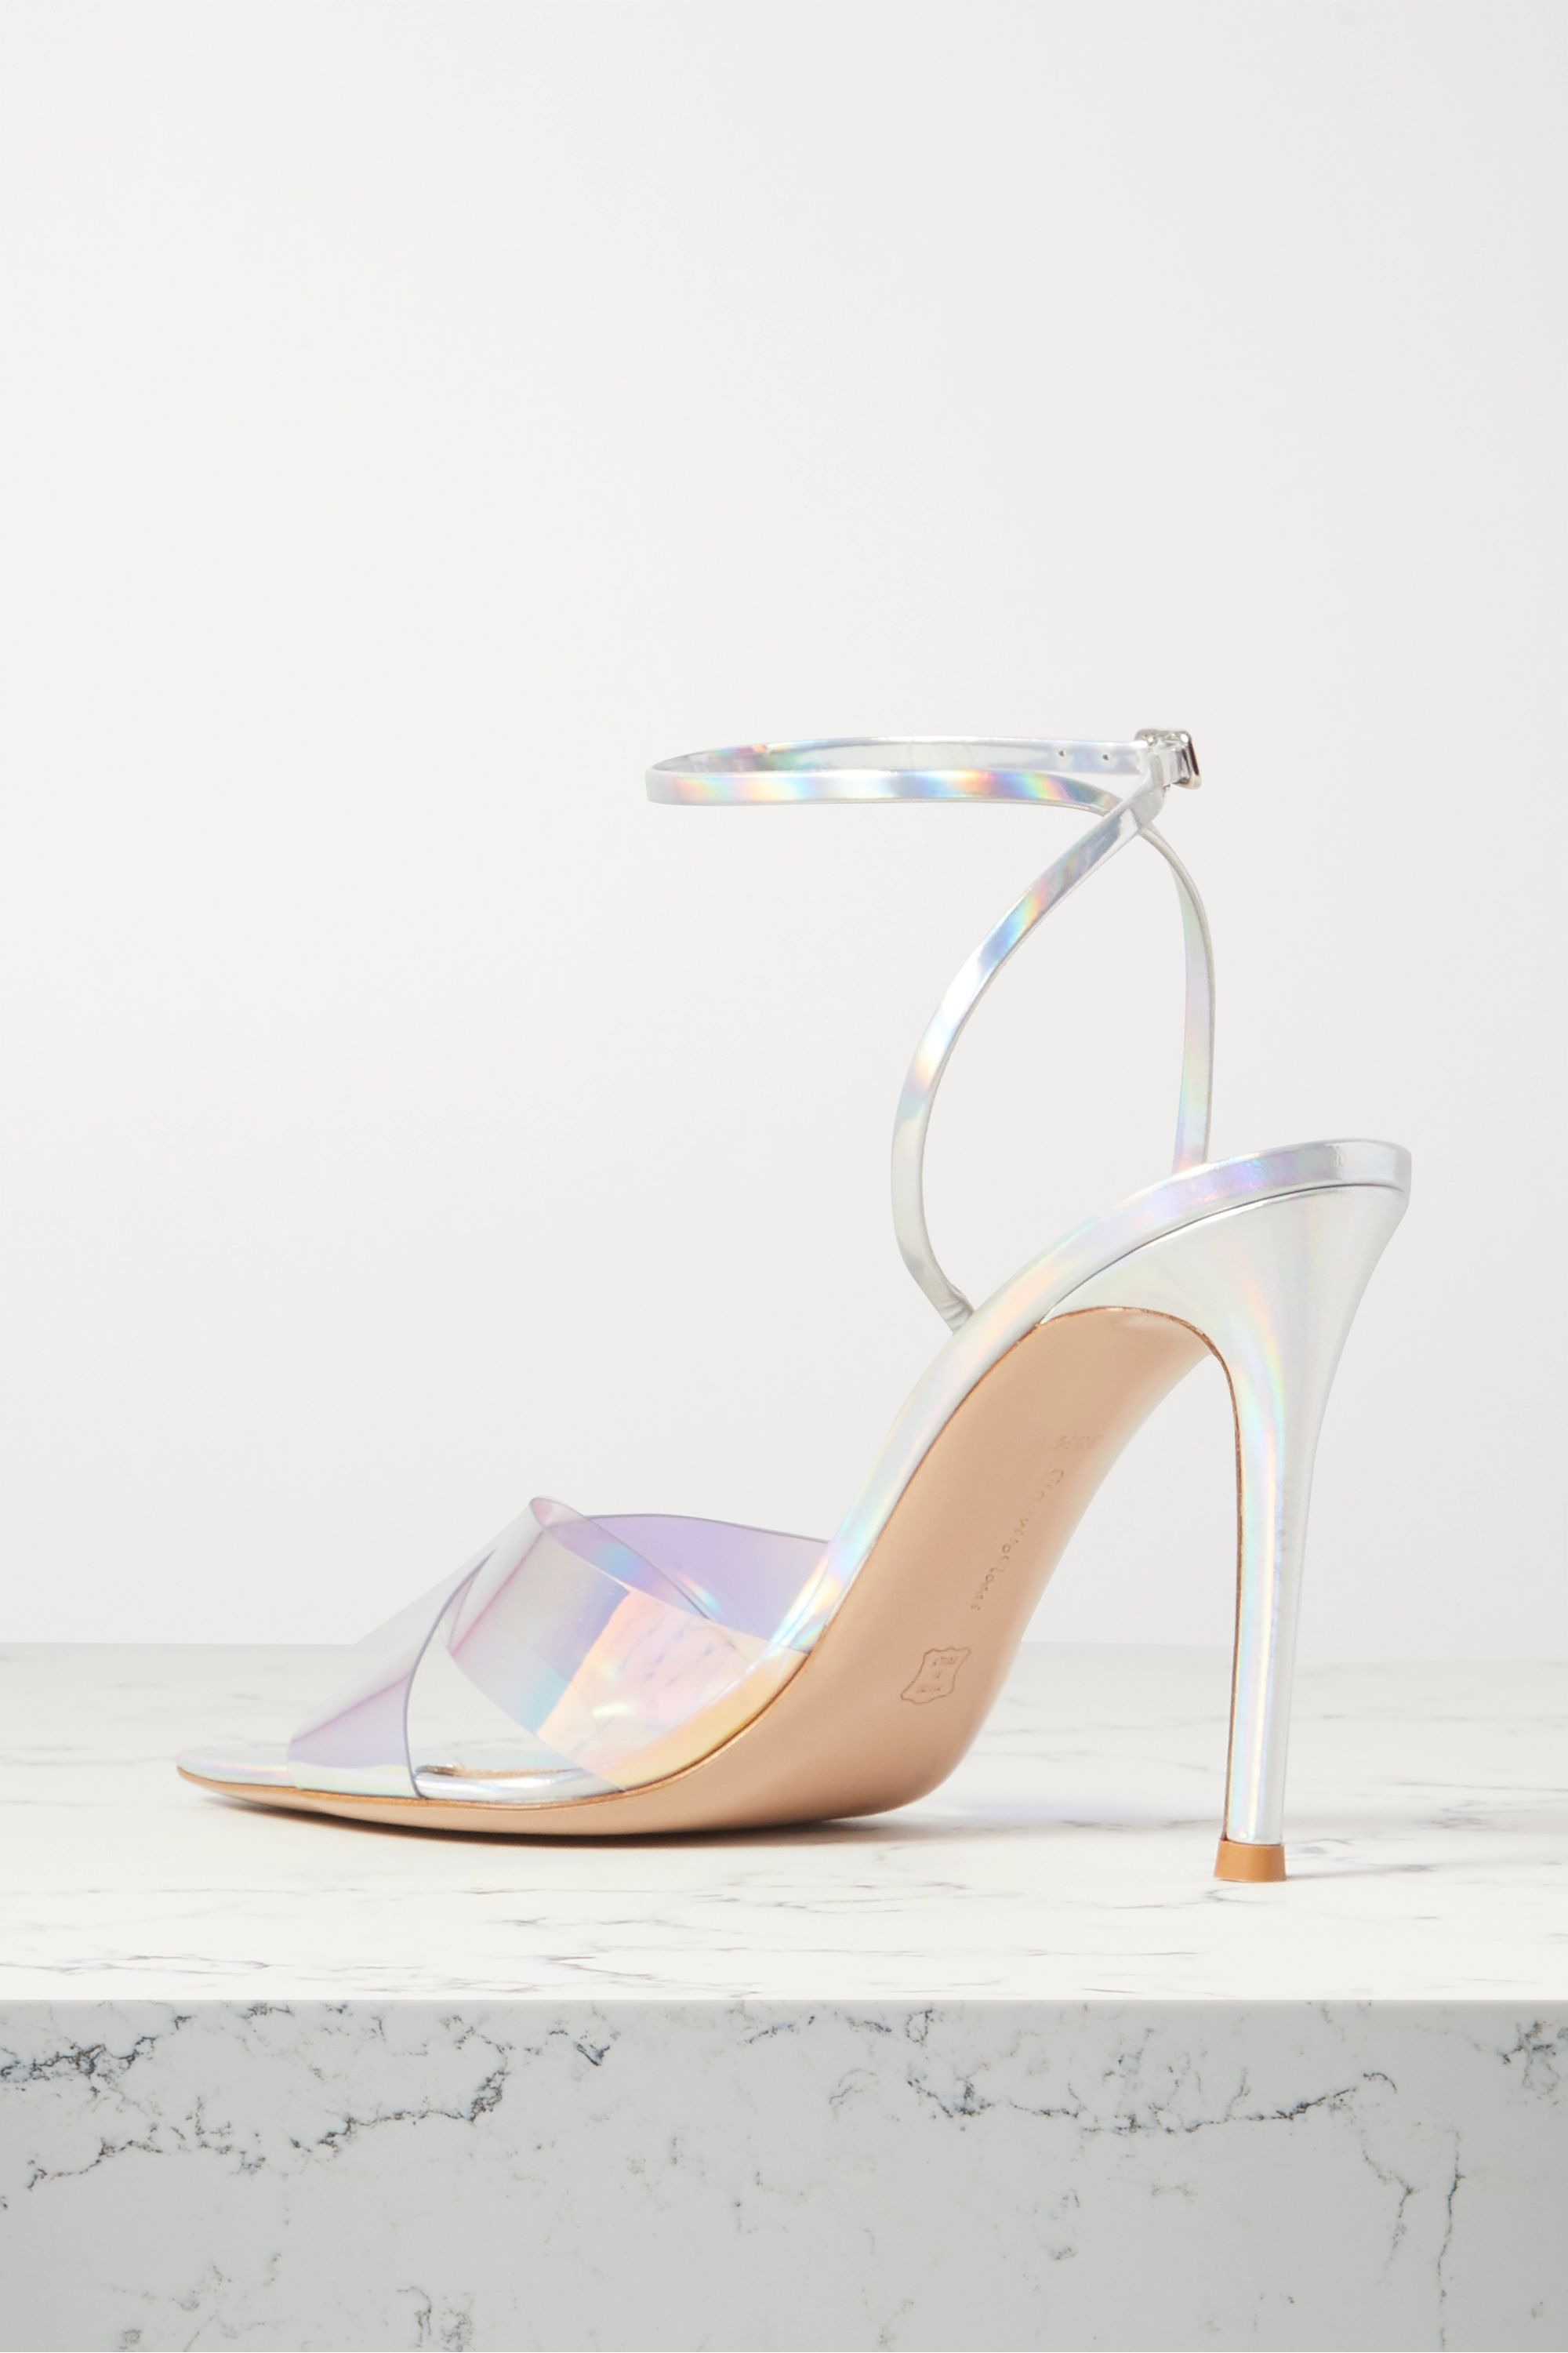 Gianvito Rossi Stark 105 iridescent leather and PVC sandals